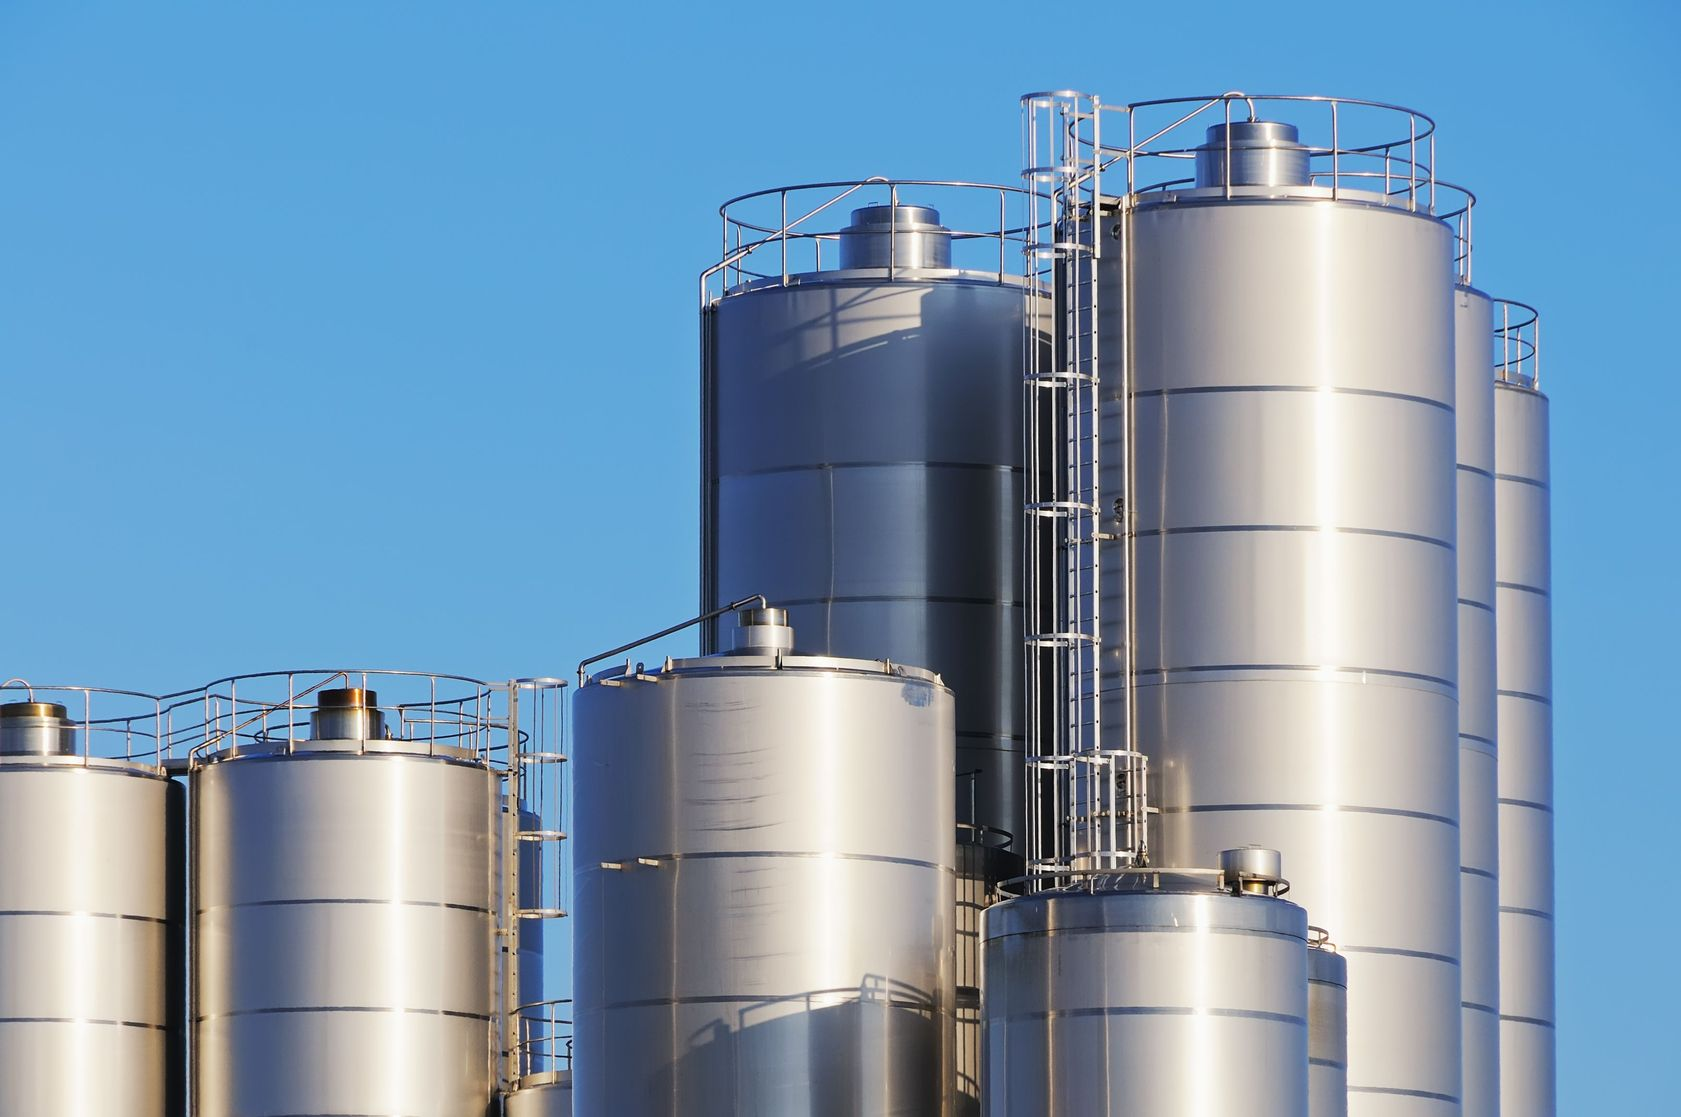 6604435 - close up shot of storage tanks of dairy plant against blue sky.